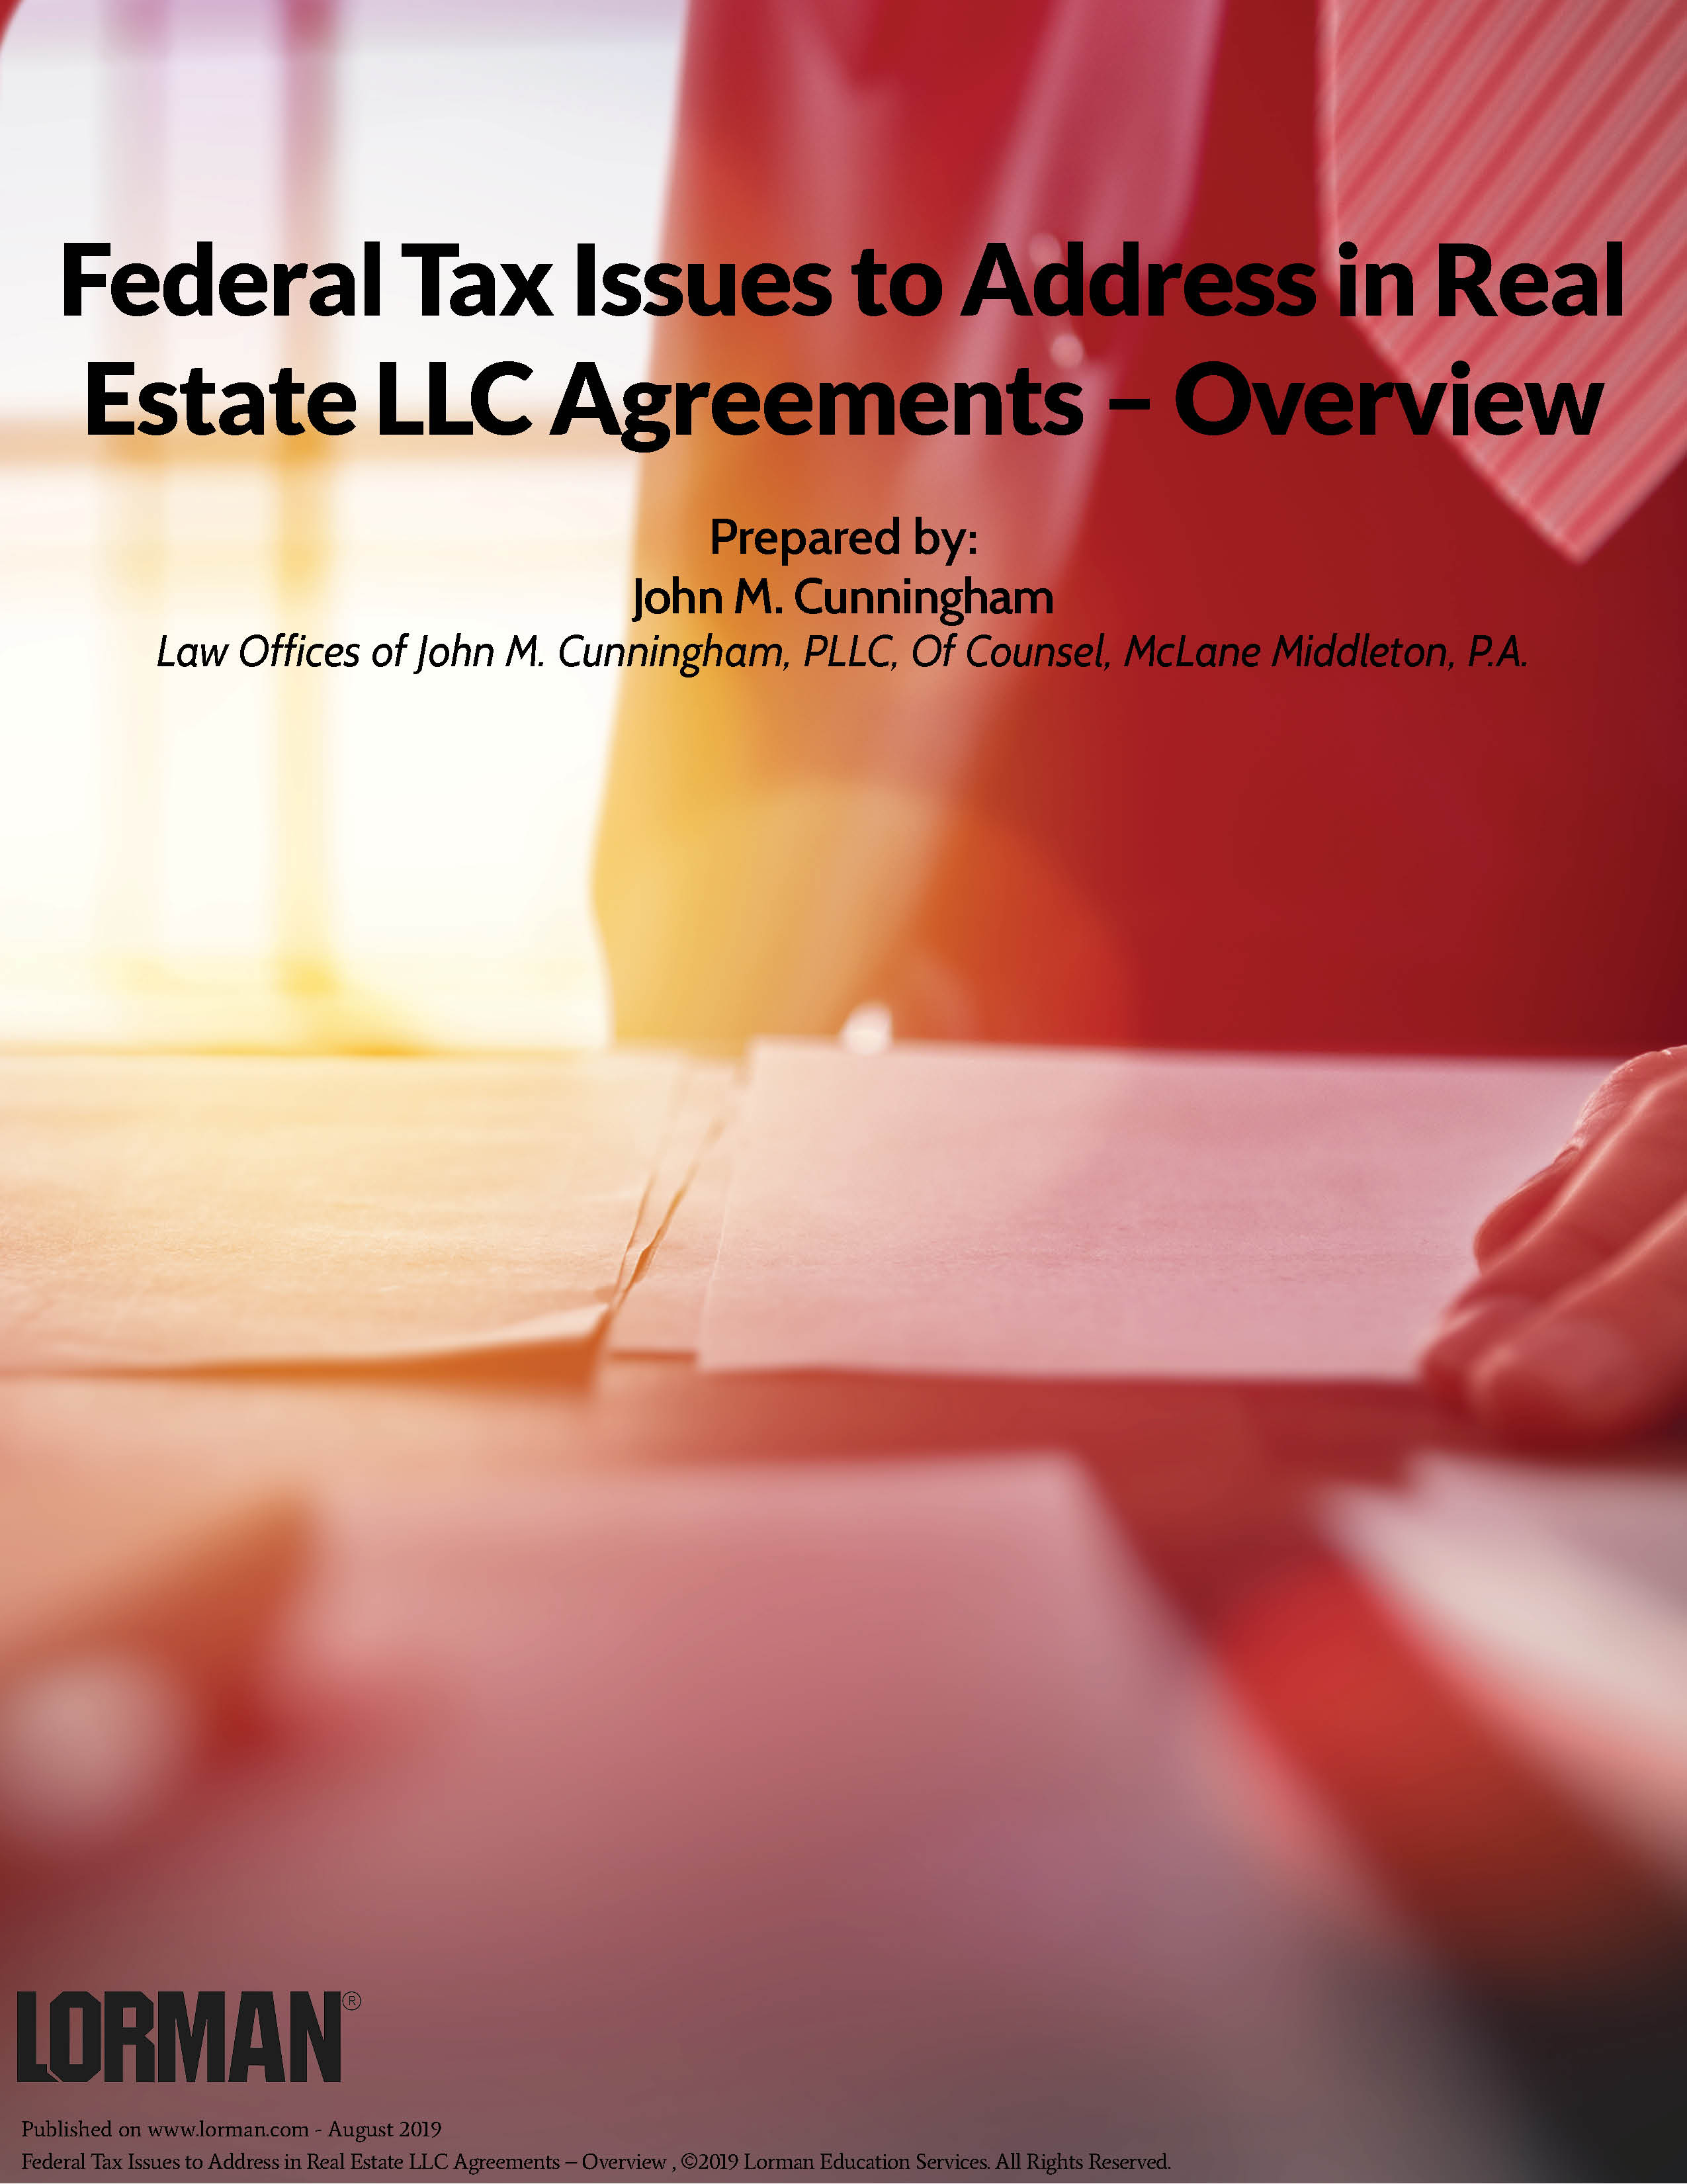 Federal Tax Issues to Address in Real Estate LLC Agreements – Overview